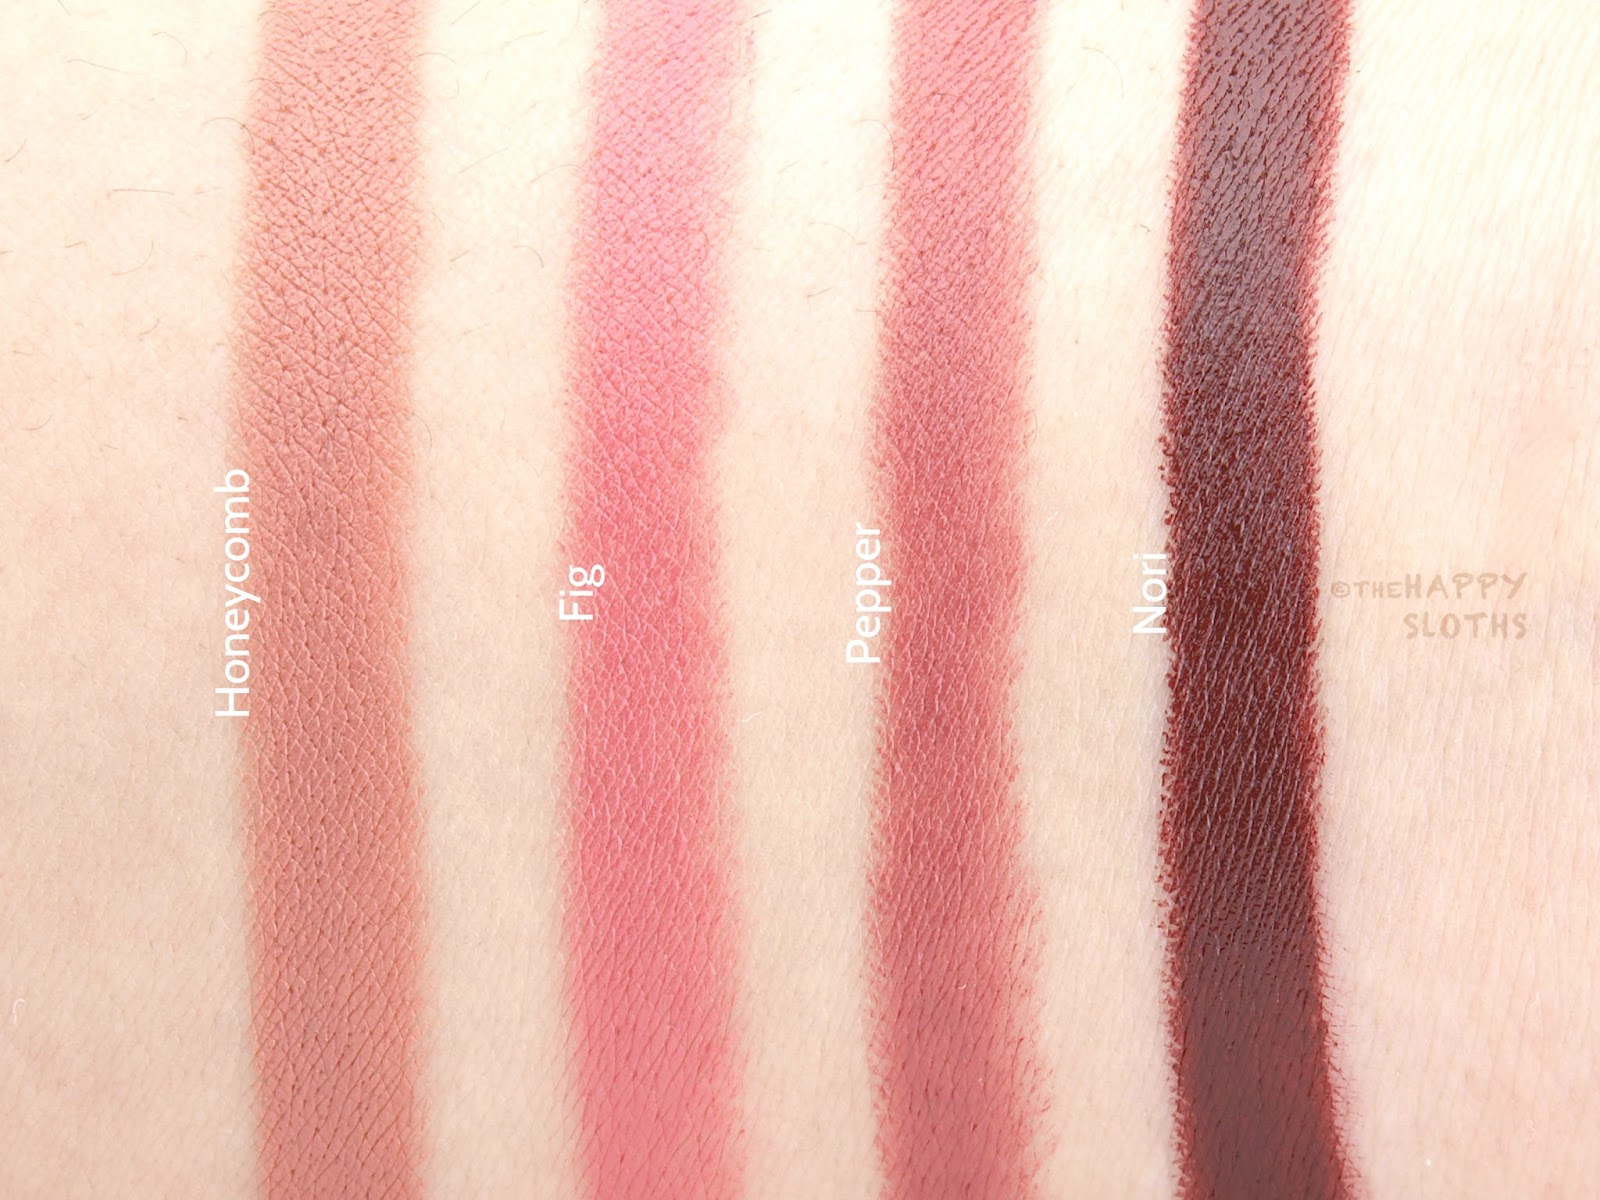 Bite The Perfect Bite Swatches Review